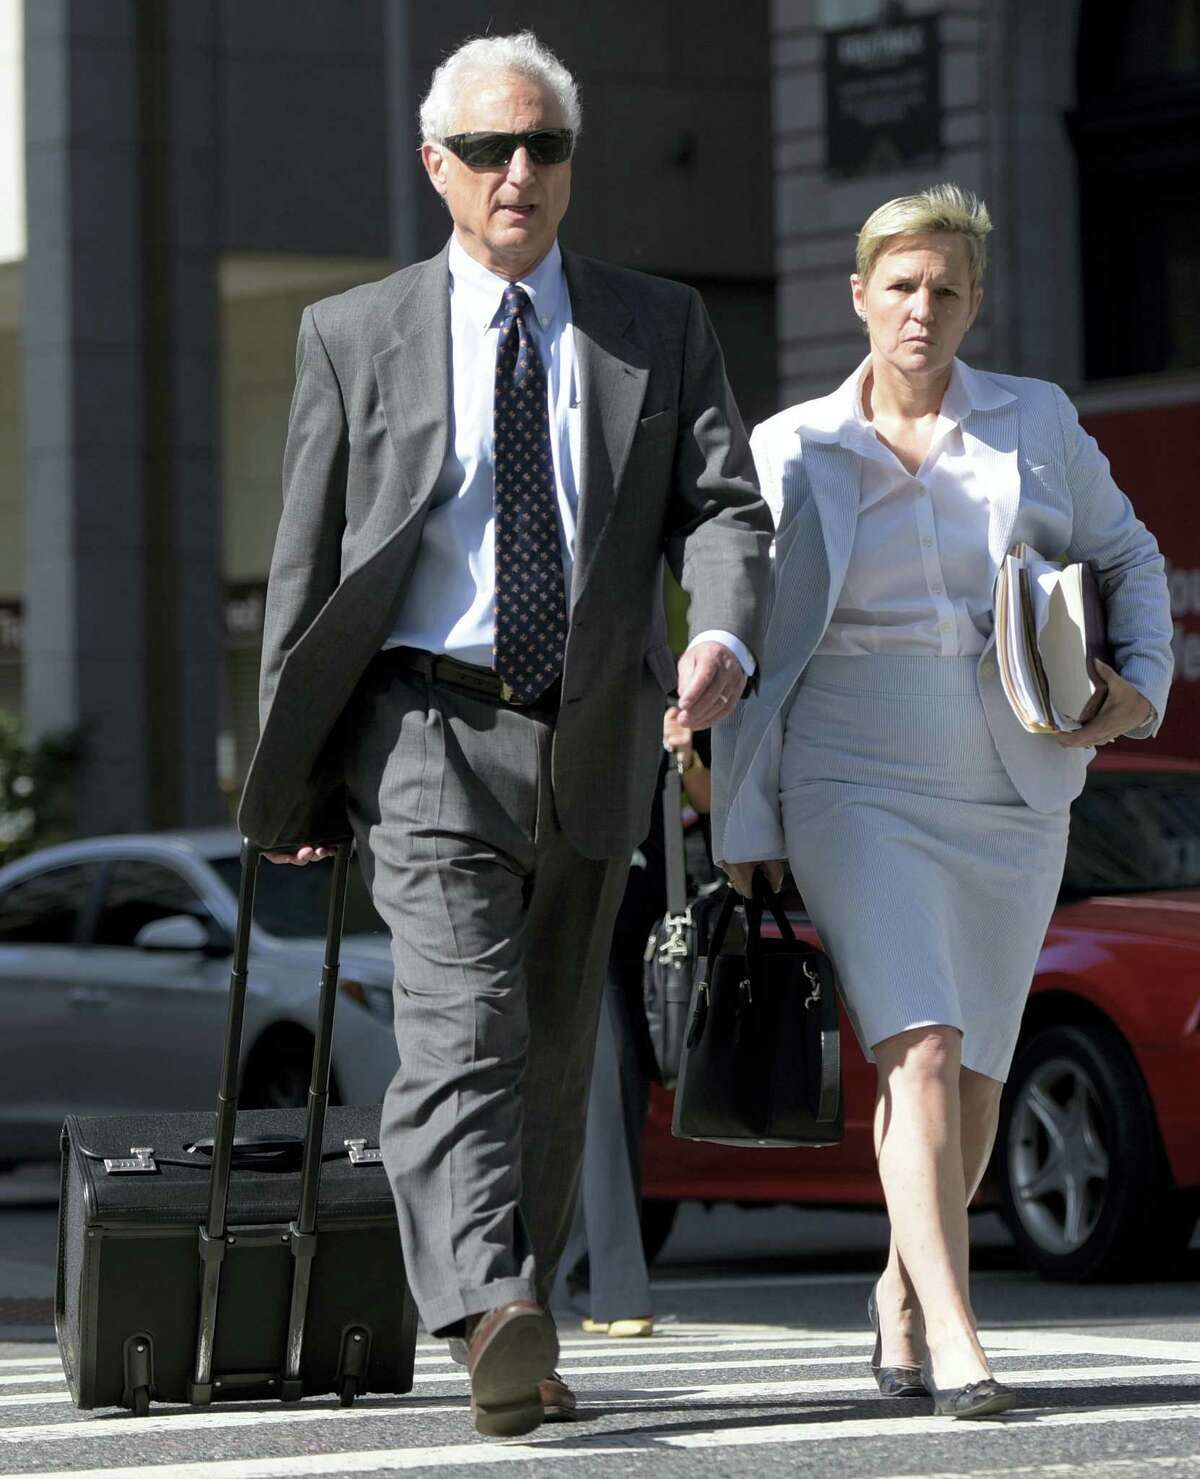 Chief Deputy State's Attorney Michael Schatzow, left, and Deputy State's Attorney Janice Bledsoe arrive for the first day of the trial of Officer Caesar Goodson, not pictured, charged with murder in the death of Freddie Gray, Thursday, June 9, 2016. Goodson, the driver of the transport wagon that carried Gray after his arrest, faces second-degree murder, manslaughter and other charges.